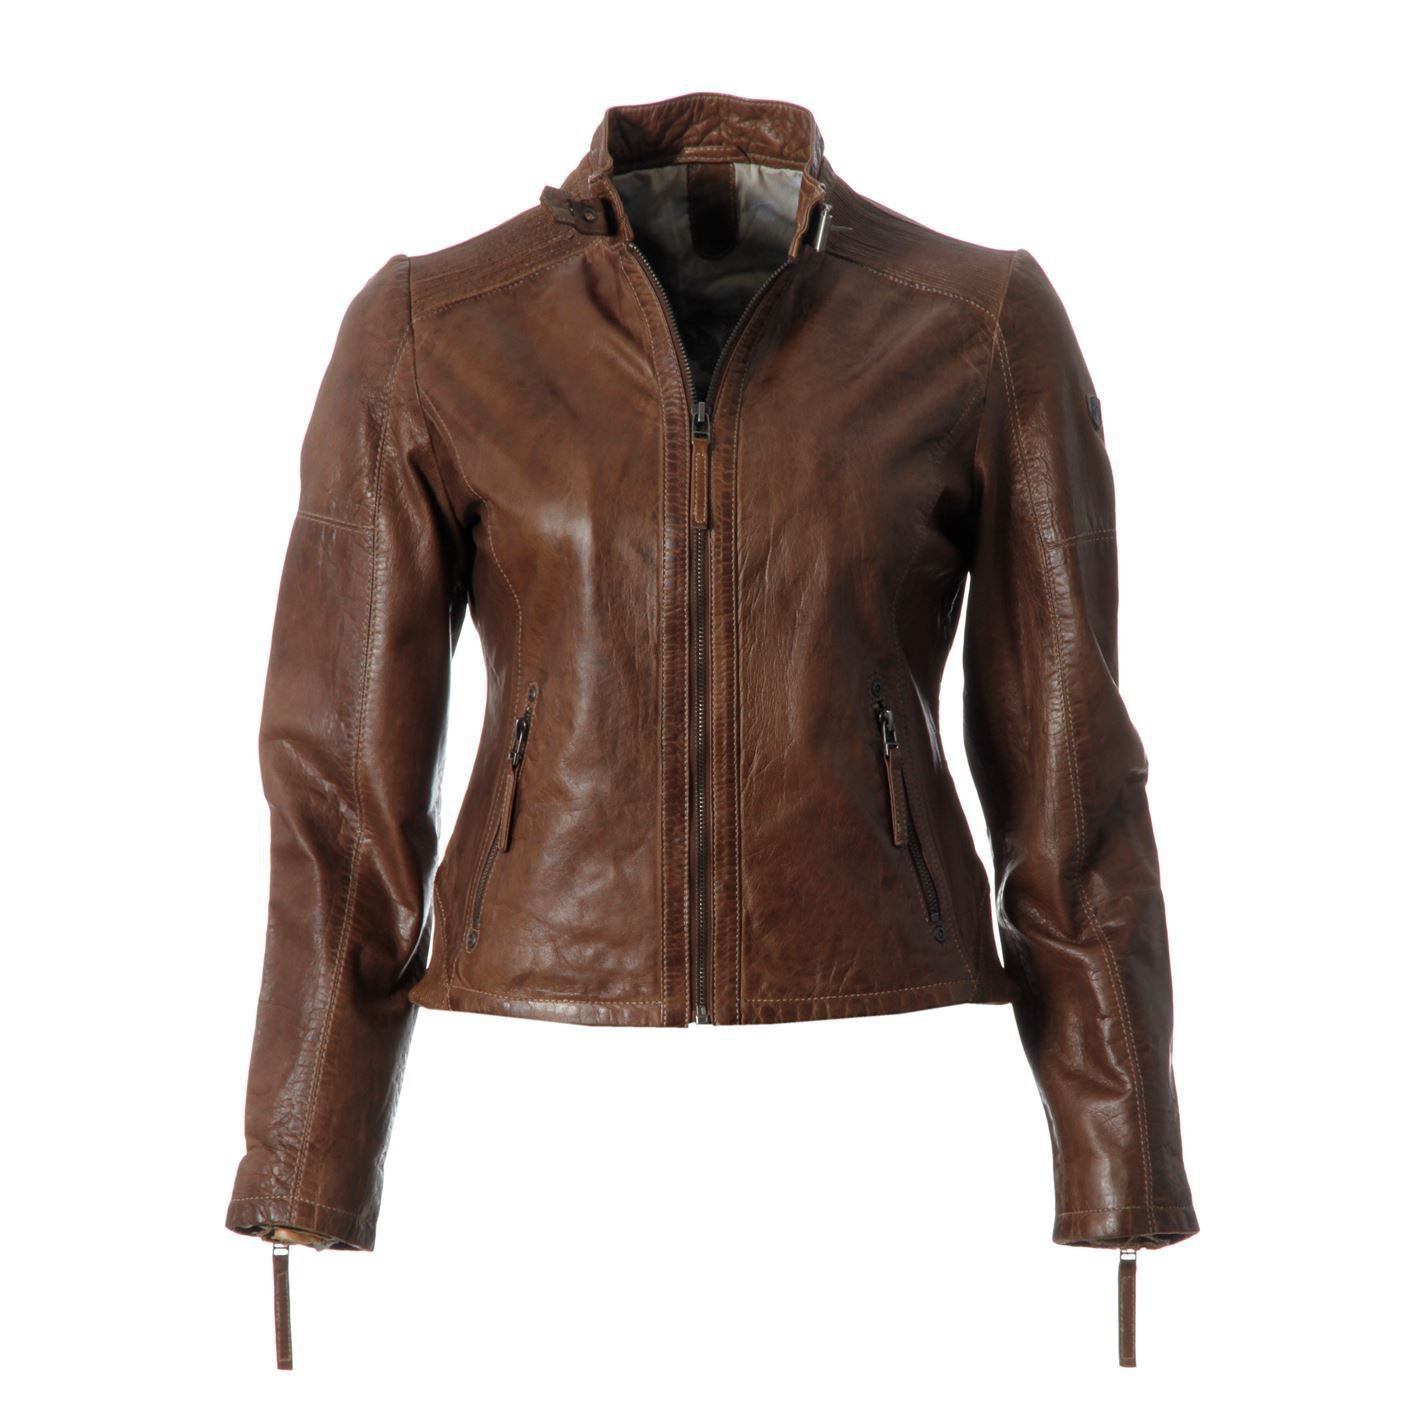 Gipsy Womens Leather Jacket Ladies Long Sleeve Full Zip Casual Outdoor